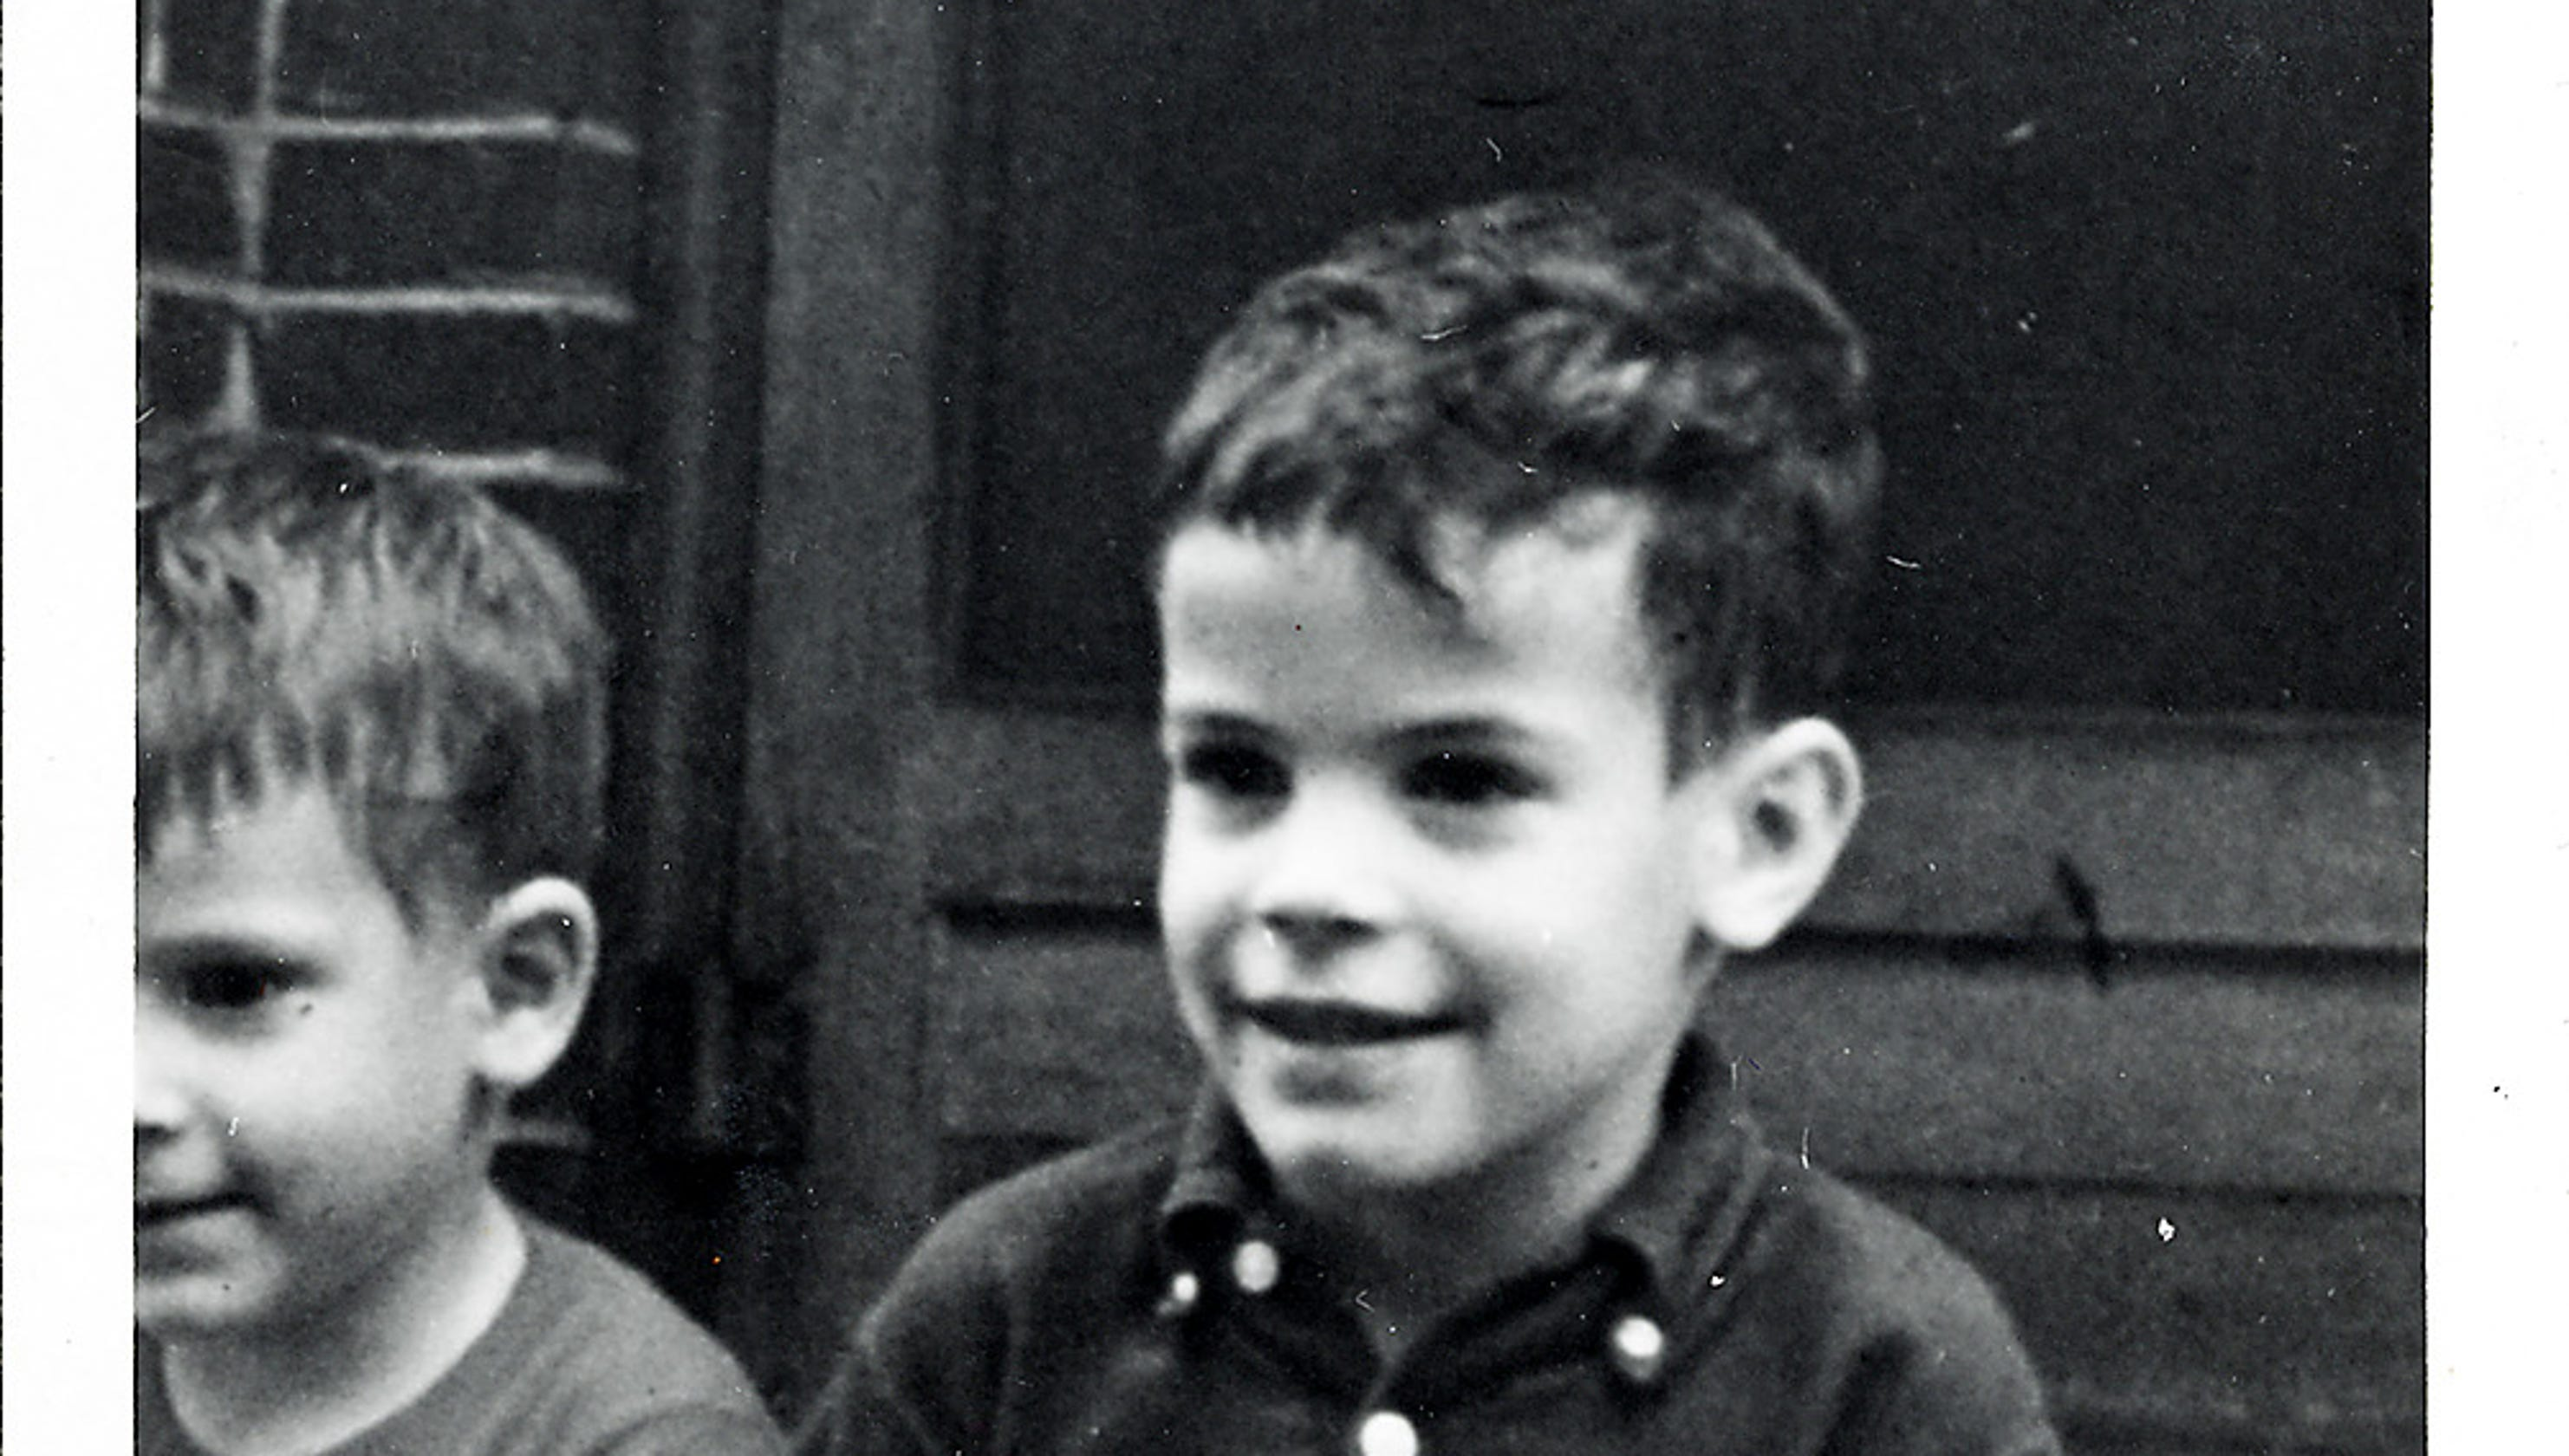 Dennis Martin: Missing boy's fate in Smokies a mystery after 50 years